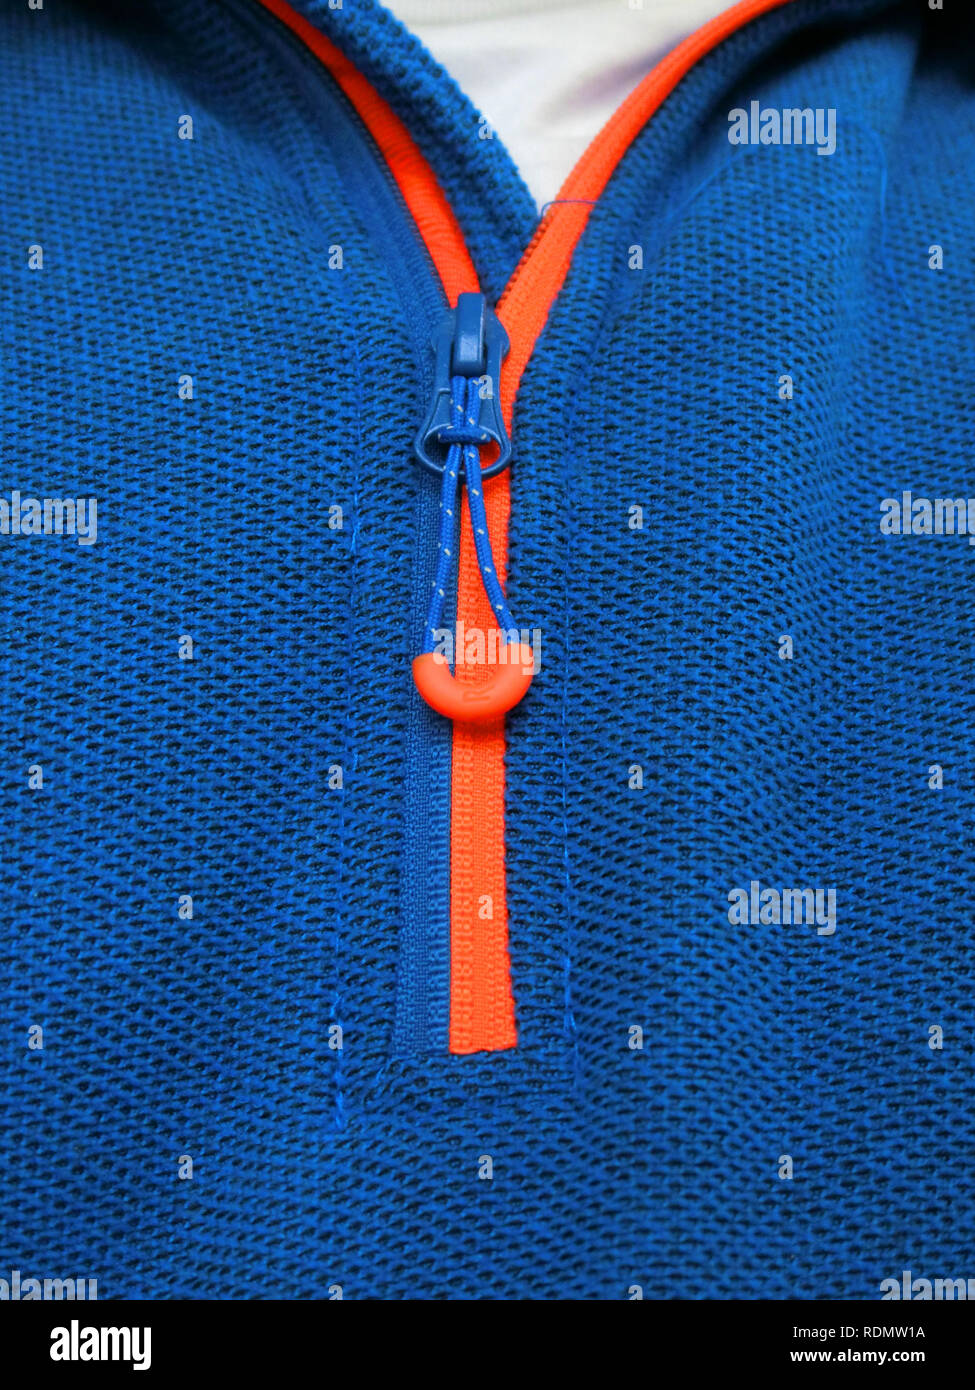 Orange Zip Fastner With Toggle or Zipper on a Man's Blue Sweatshirt Clothing - Stock Image